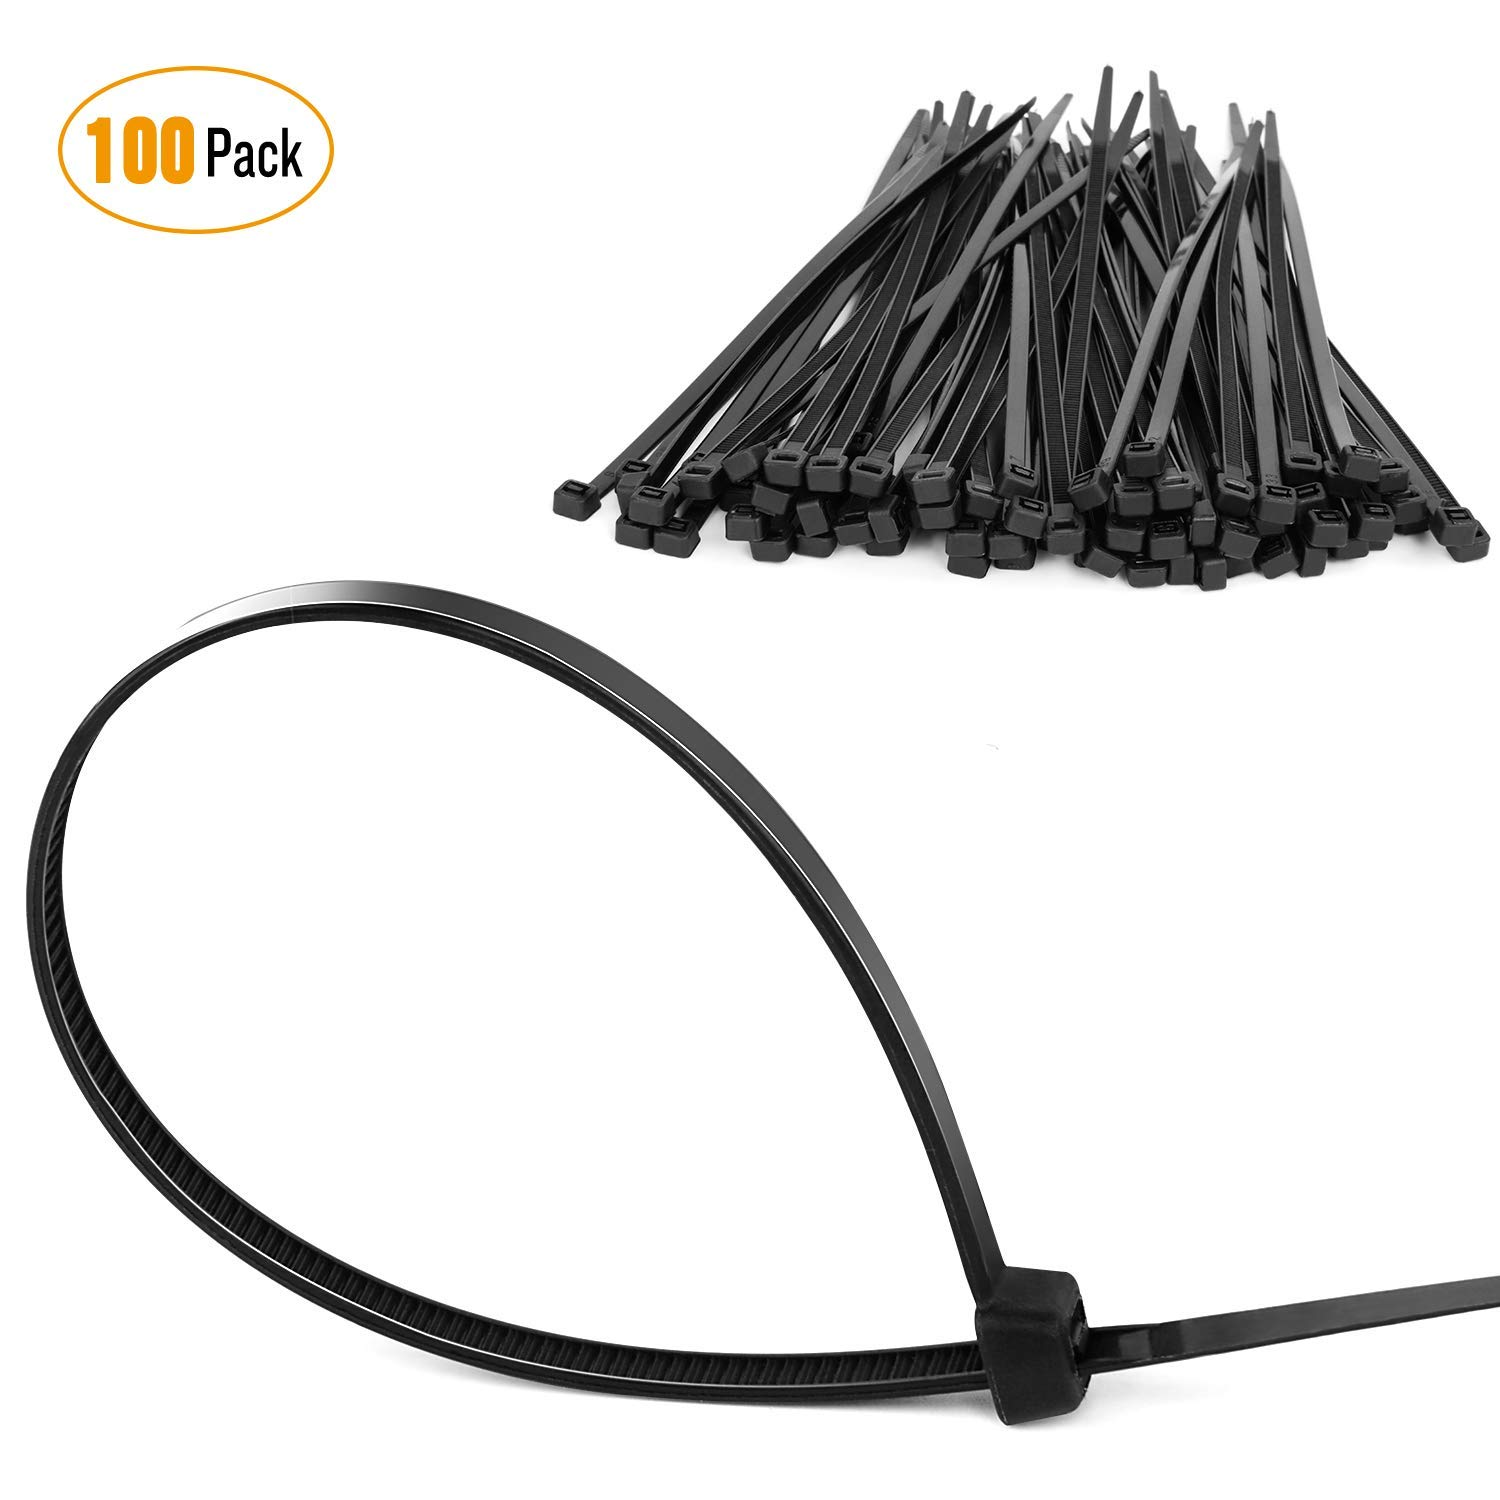 Gooacc 6252844 8 Plastic Cable Zip Ties 100 Pack 2000 Honda Odyssey Headlight Assembly Wiring Automotive